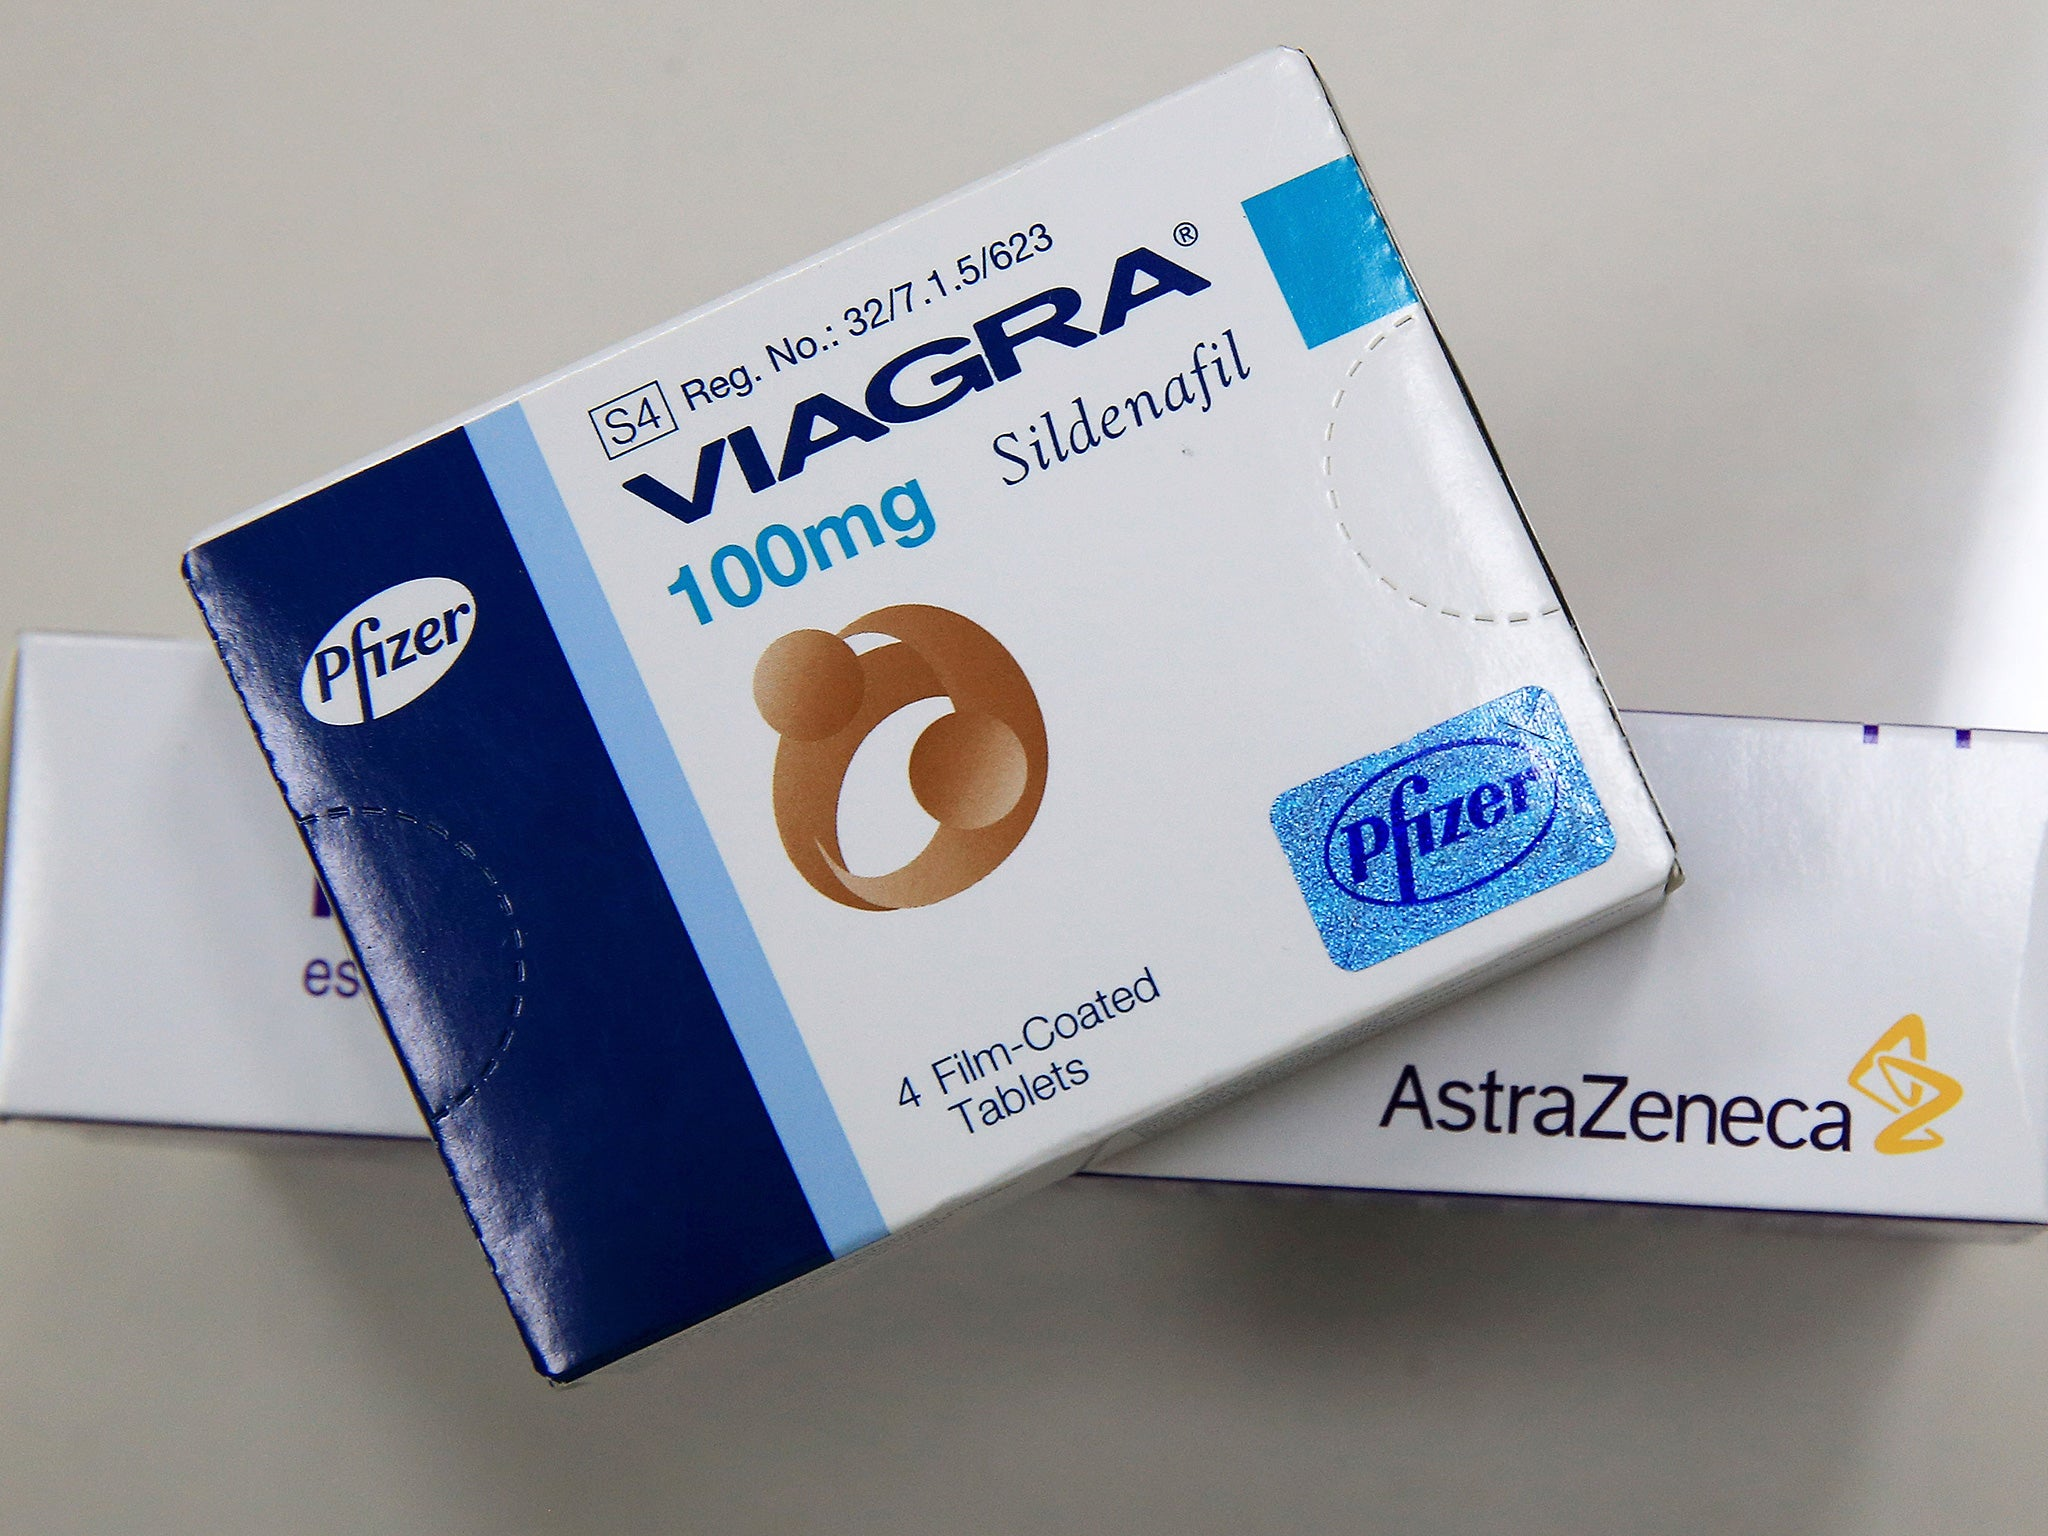 Viagra use in the military